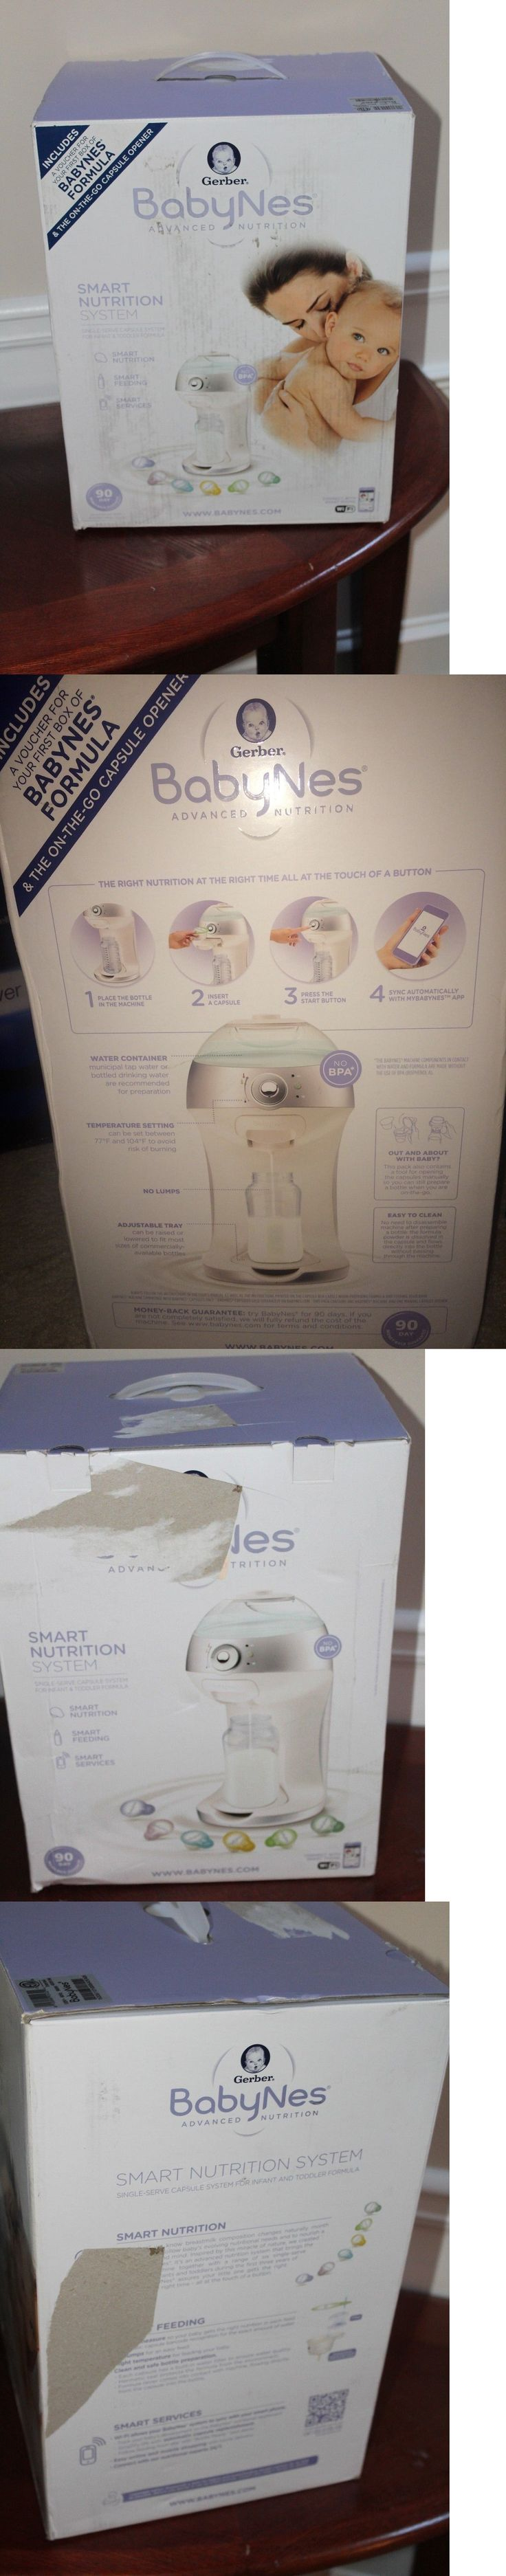 Formula Dispensers 184347: Gerber Babynes Baby Formula Dispenser With Wifi Connect With Smart Phone -> BUY IT NOW ONLY: $130 on eBay!